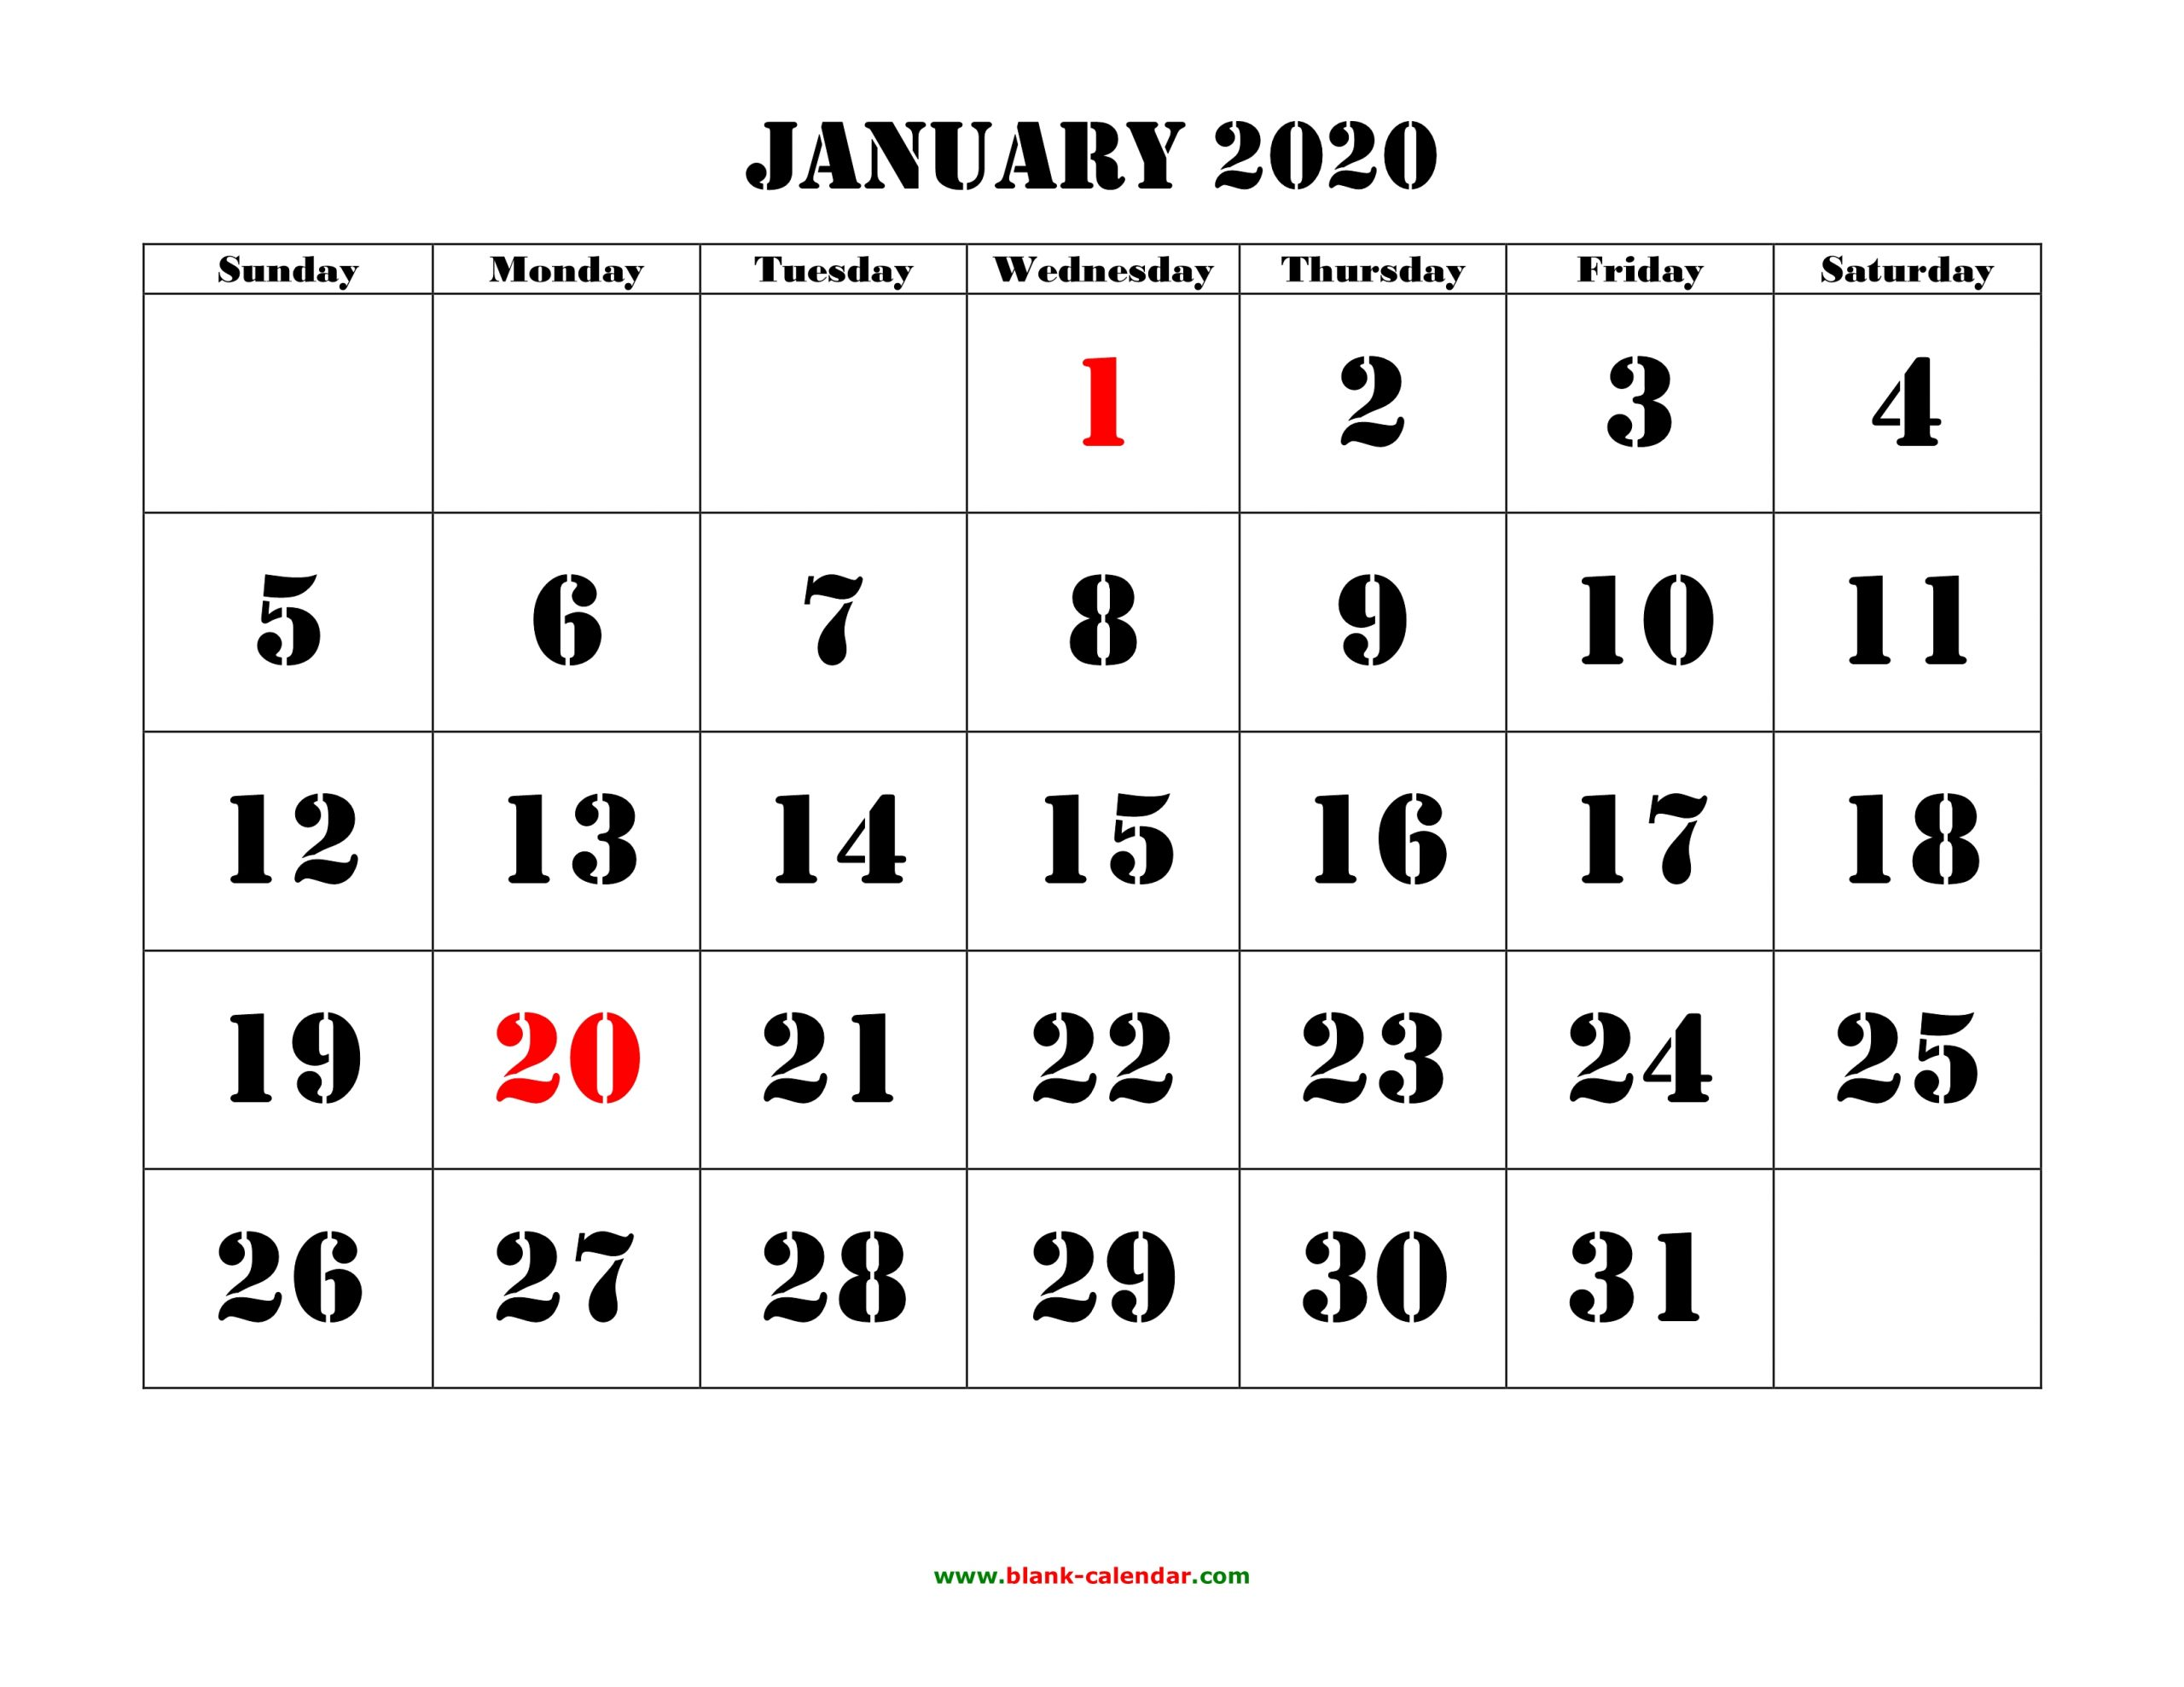 Take Free Large Font Printable 2020 Calendar With Holidays Us